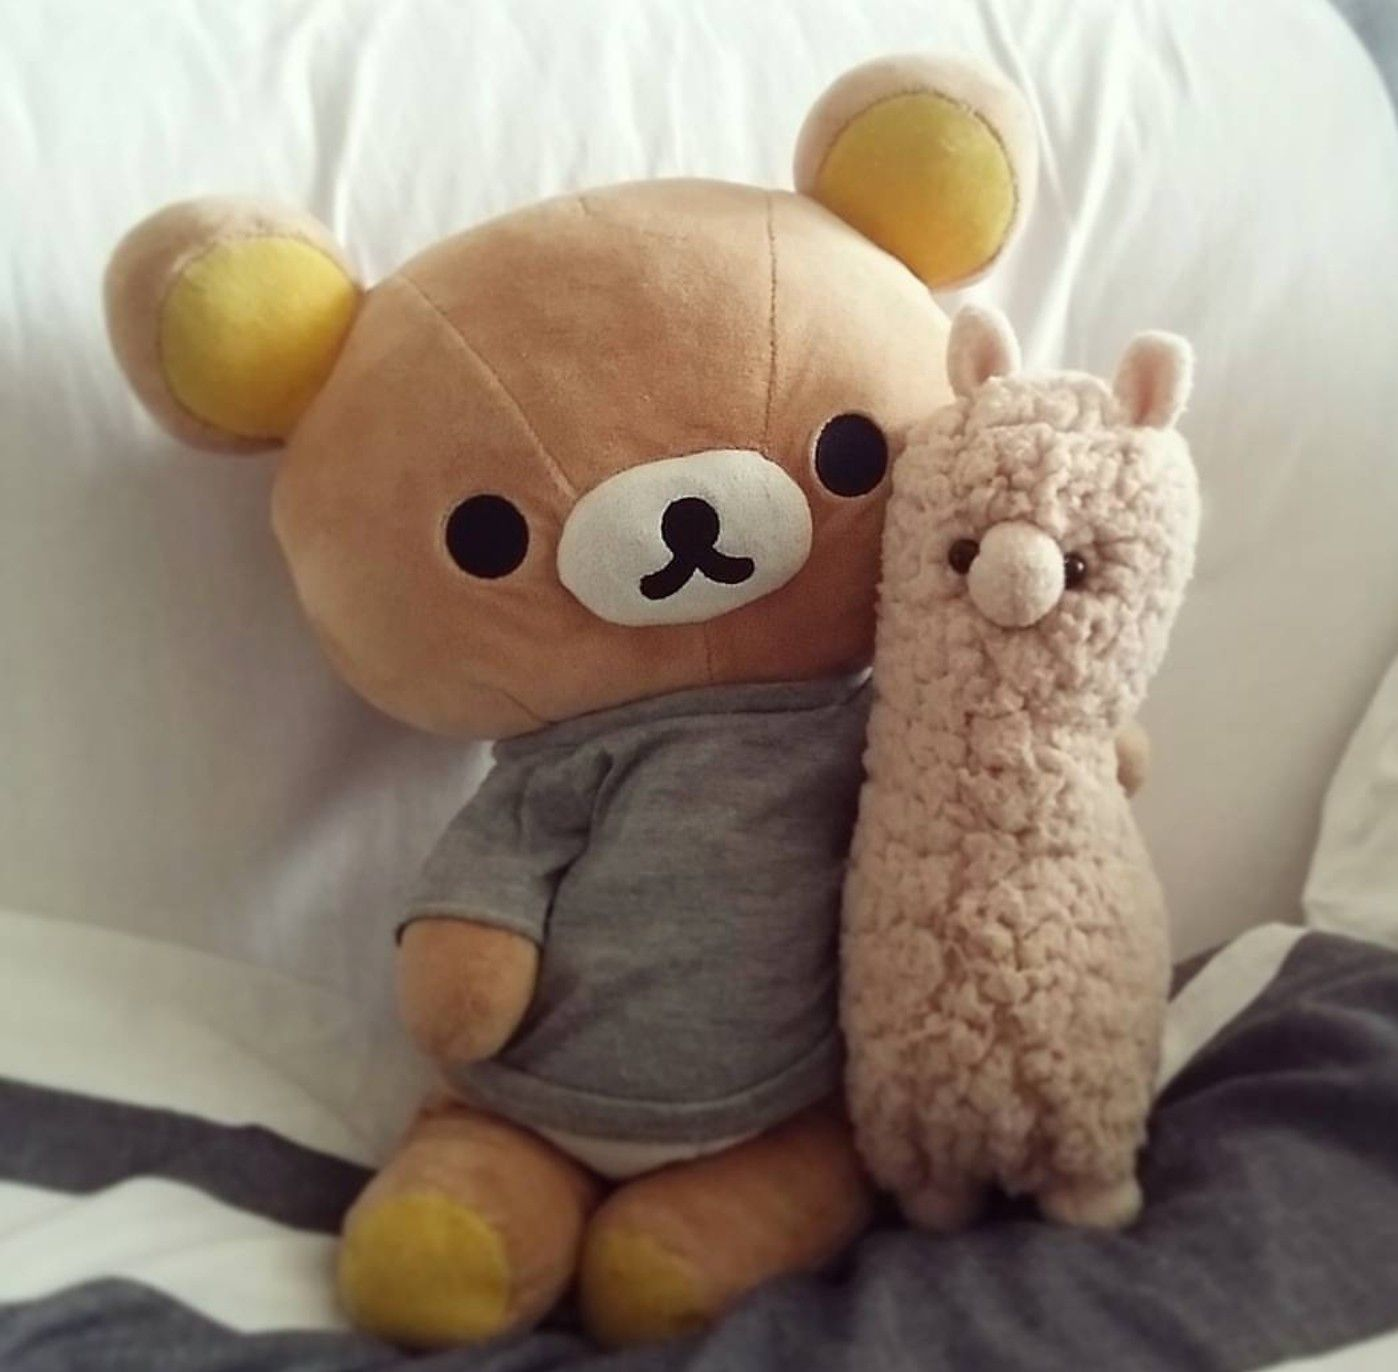 Rilakkuma Pinterest Ashshila Kawaii Plushies Kawaii Plush Cute Stuffed Animals